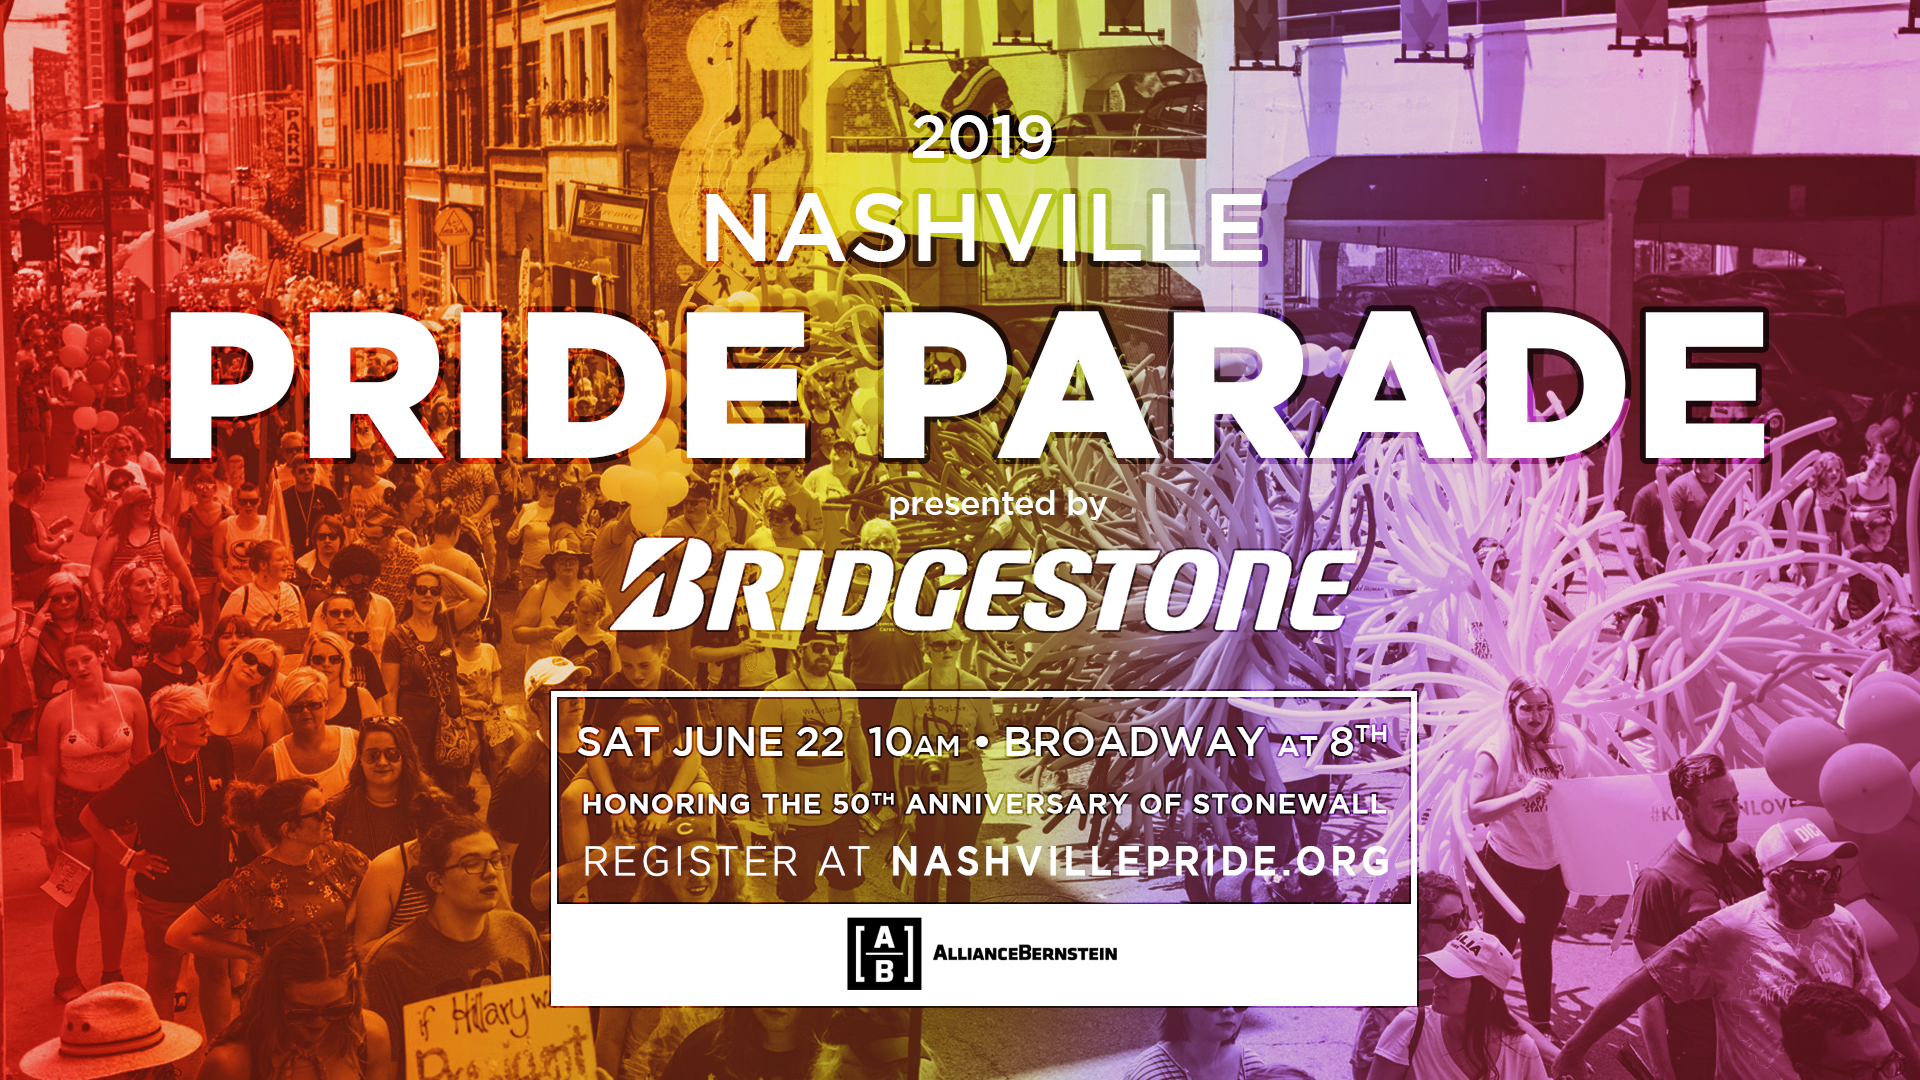 Nashville-Pride-2019-FB-event-cover-PARADE-3.png